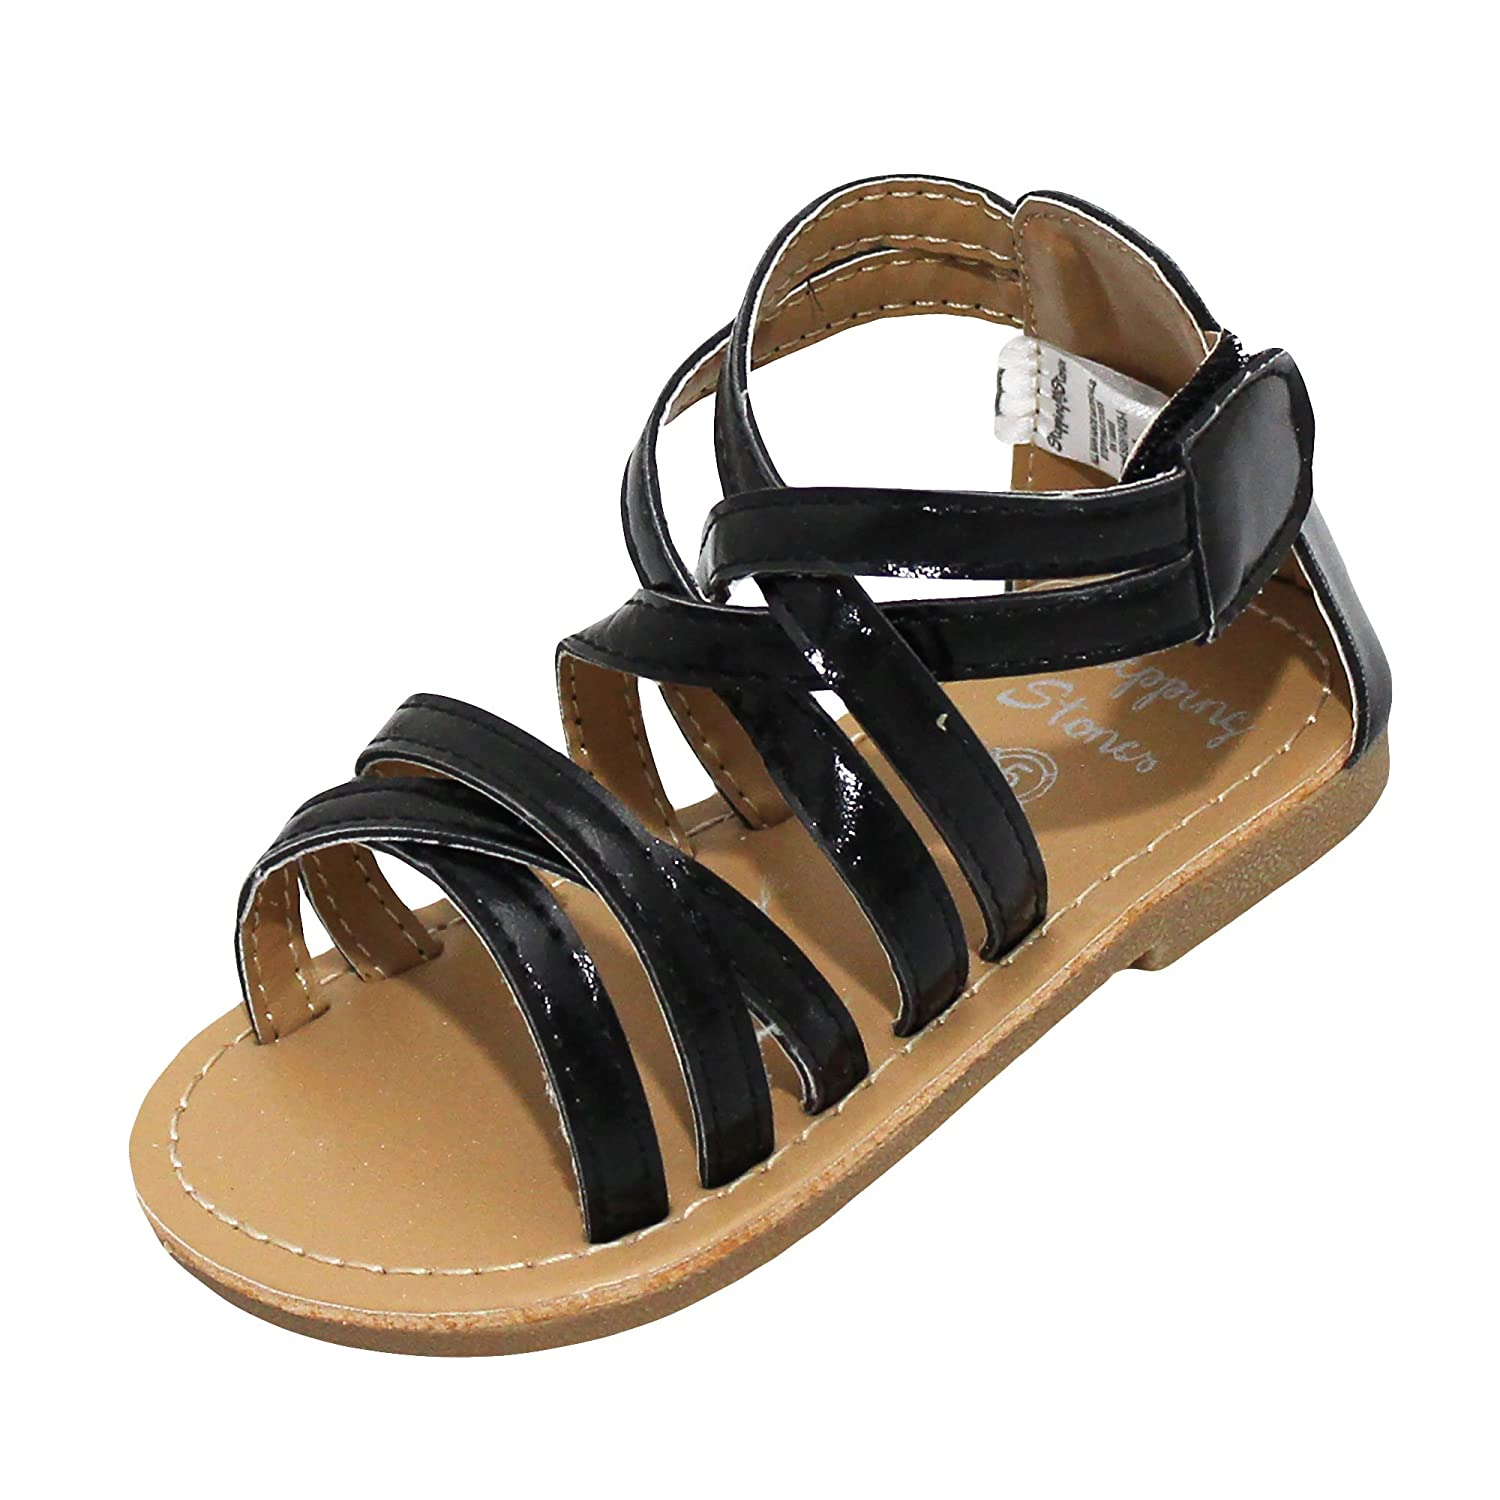 08b6a0280d1 Stepping Stones Little Girls Gladiator Sandals (Girls Strappy Sandals)  Sizes 3-10 Silver Gold, Copper Black